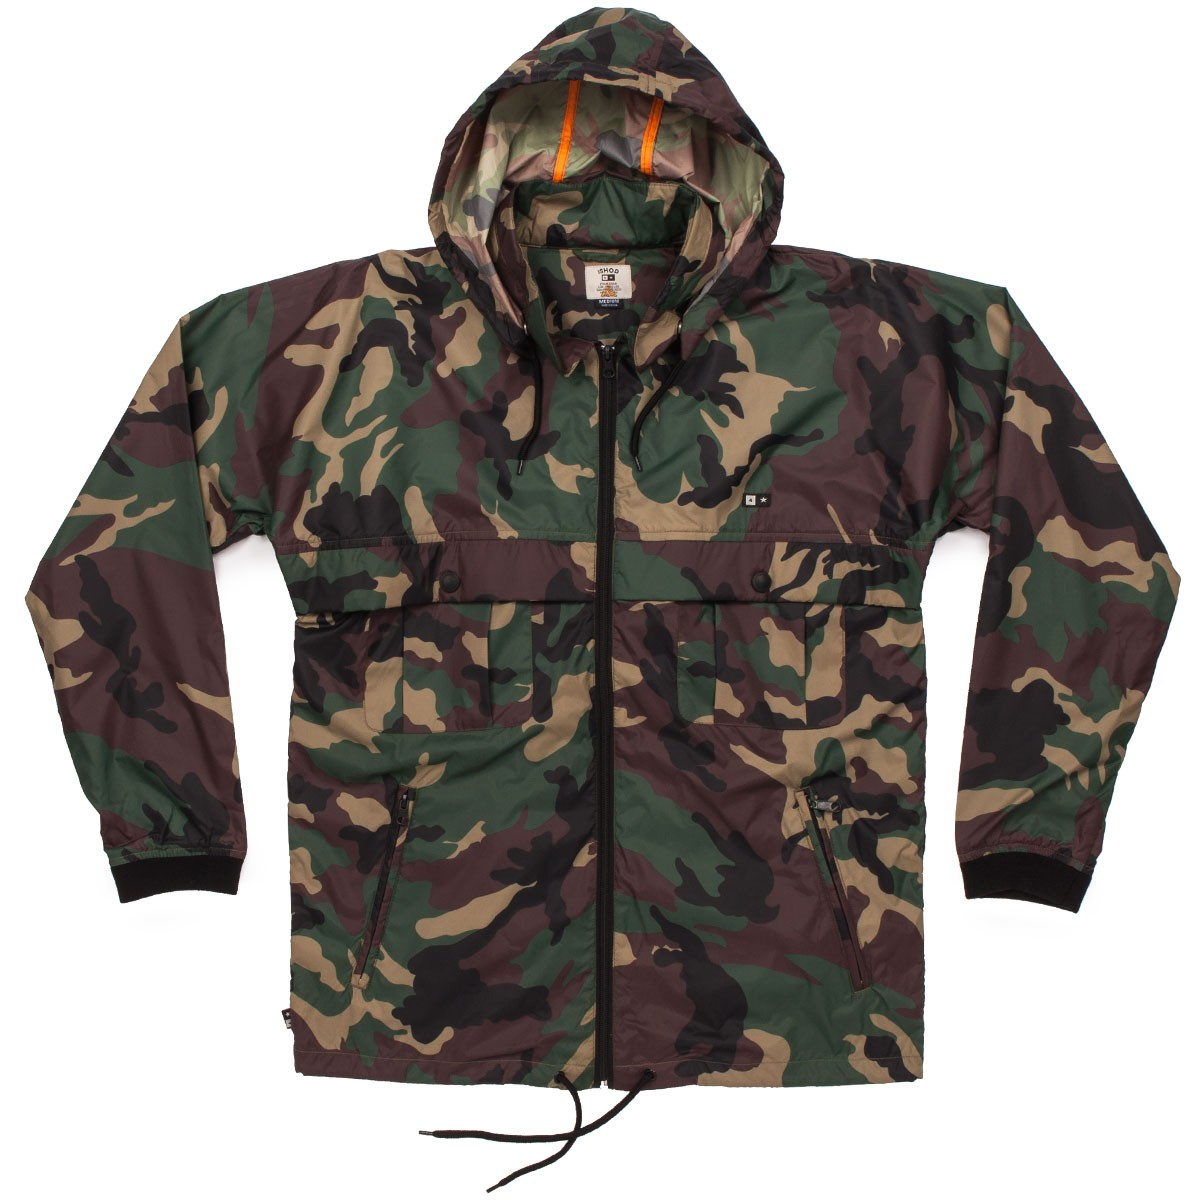 Fourstar Ishod Tour Jacket - Camo